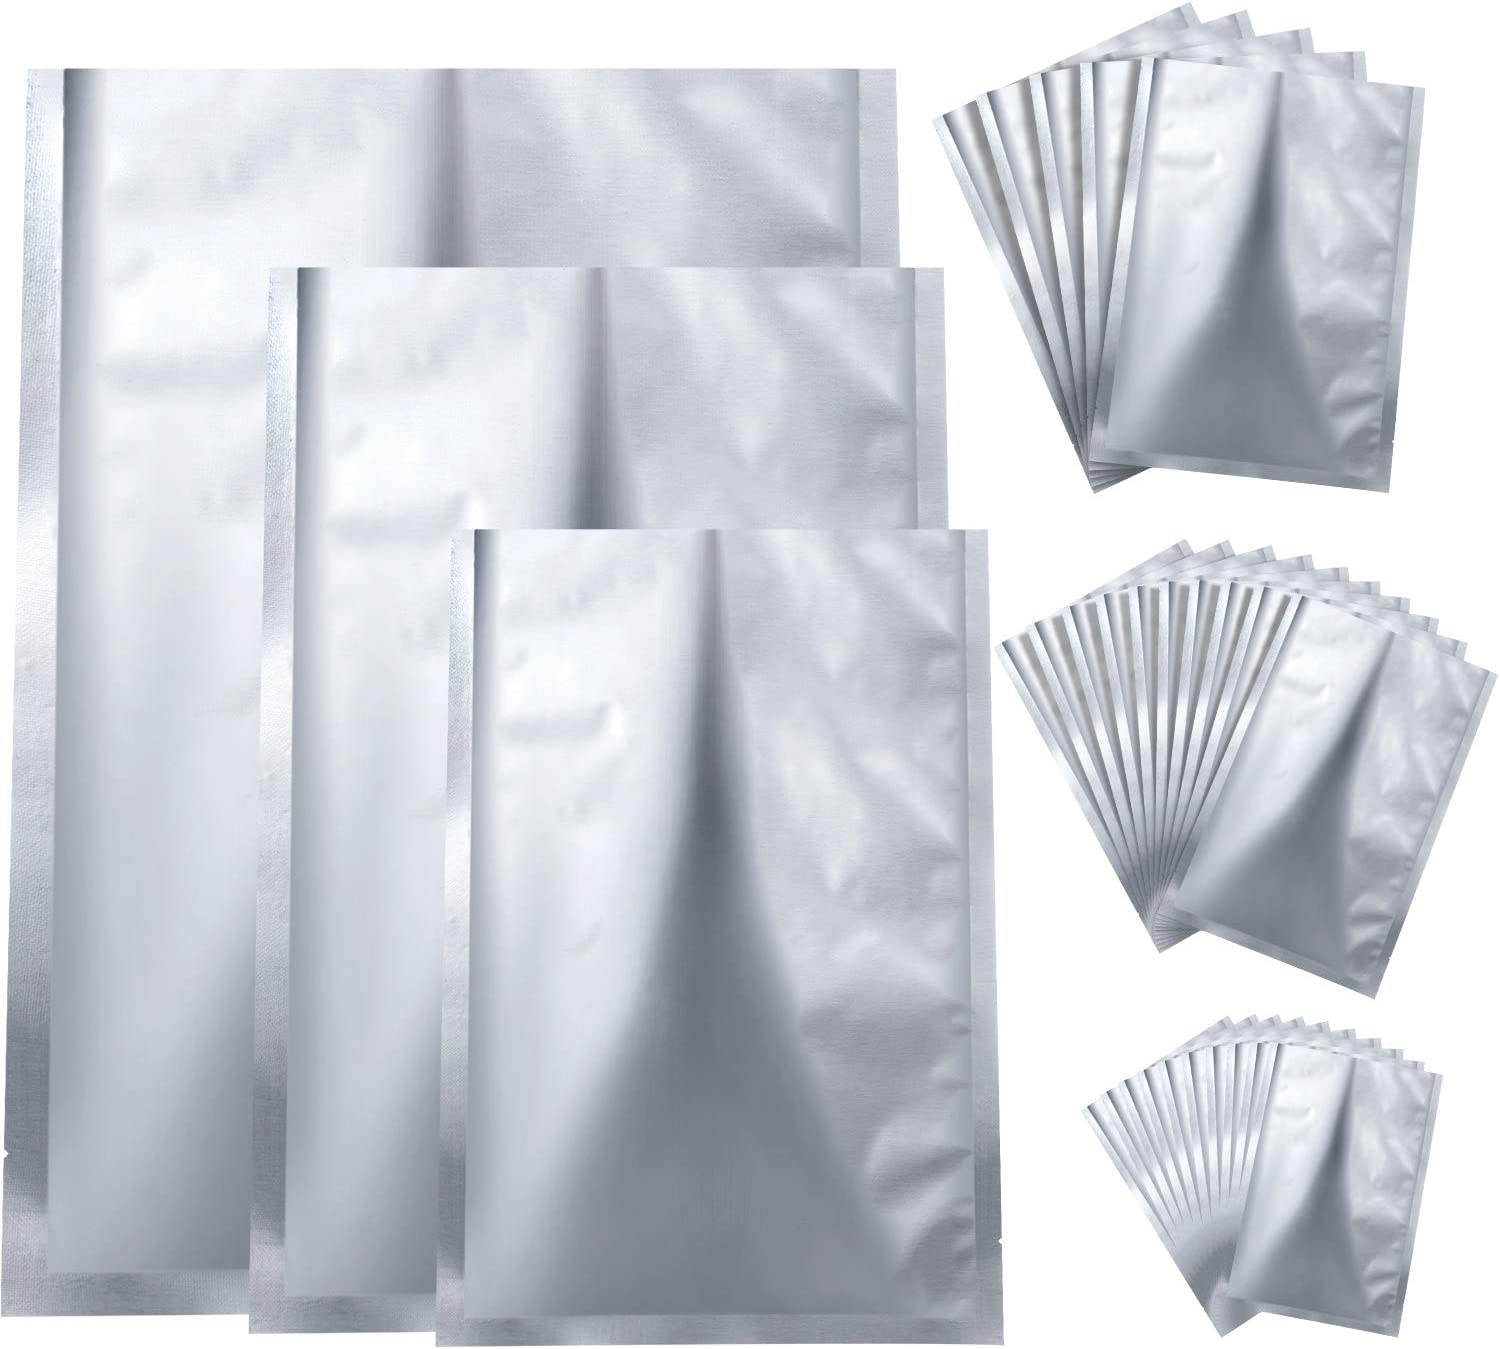 25 Pieces 3 Sizes Mylar Aluminum Foil Bags, Metallic Mylar Foil Flat Heat Sealing Bags Storage Bags Pouch for Food Coffee Tea Beans (6 x 9 Inch, 8 x 11 Inch, 10 x 14 Inch)